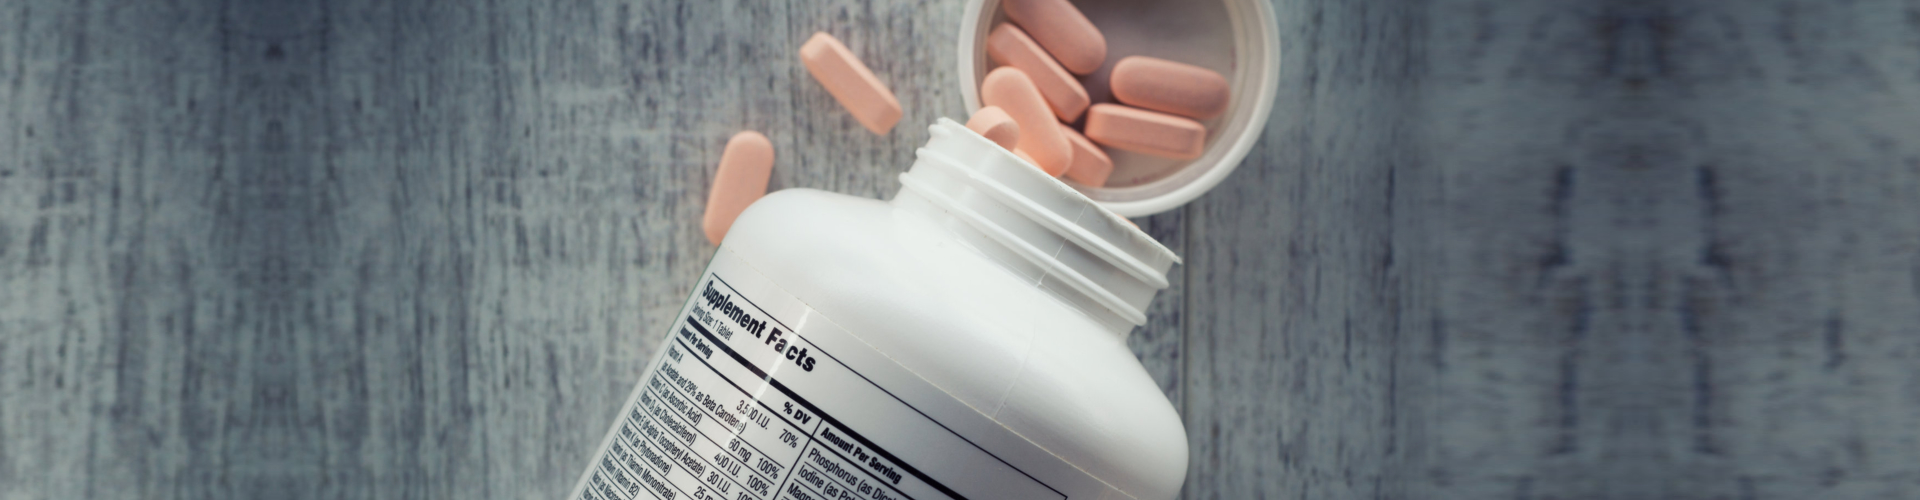 Closeup of a bottle of vitamins